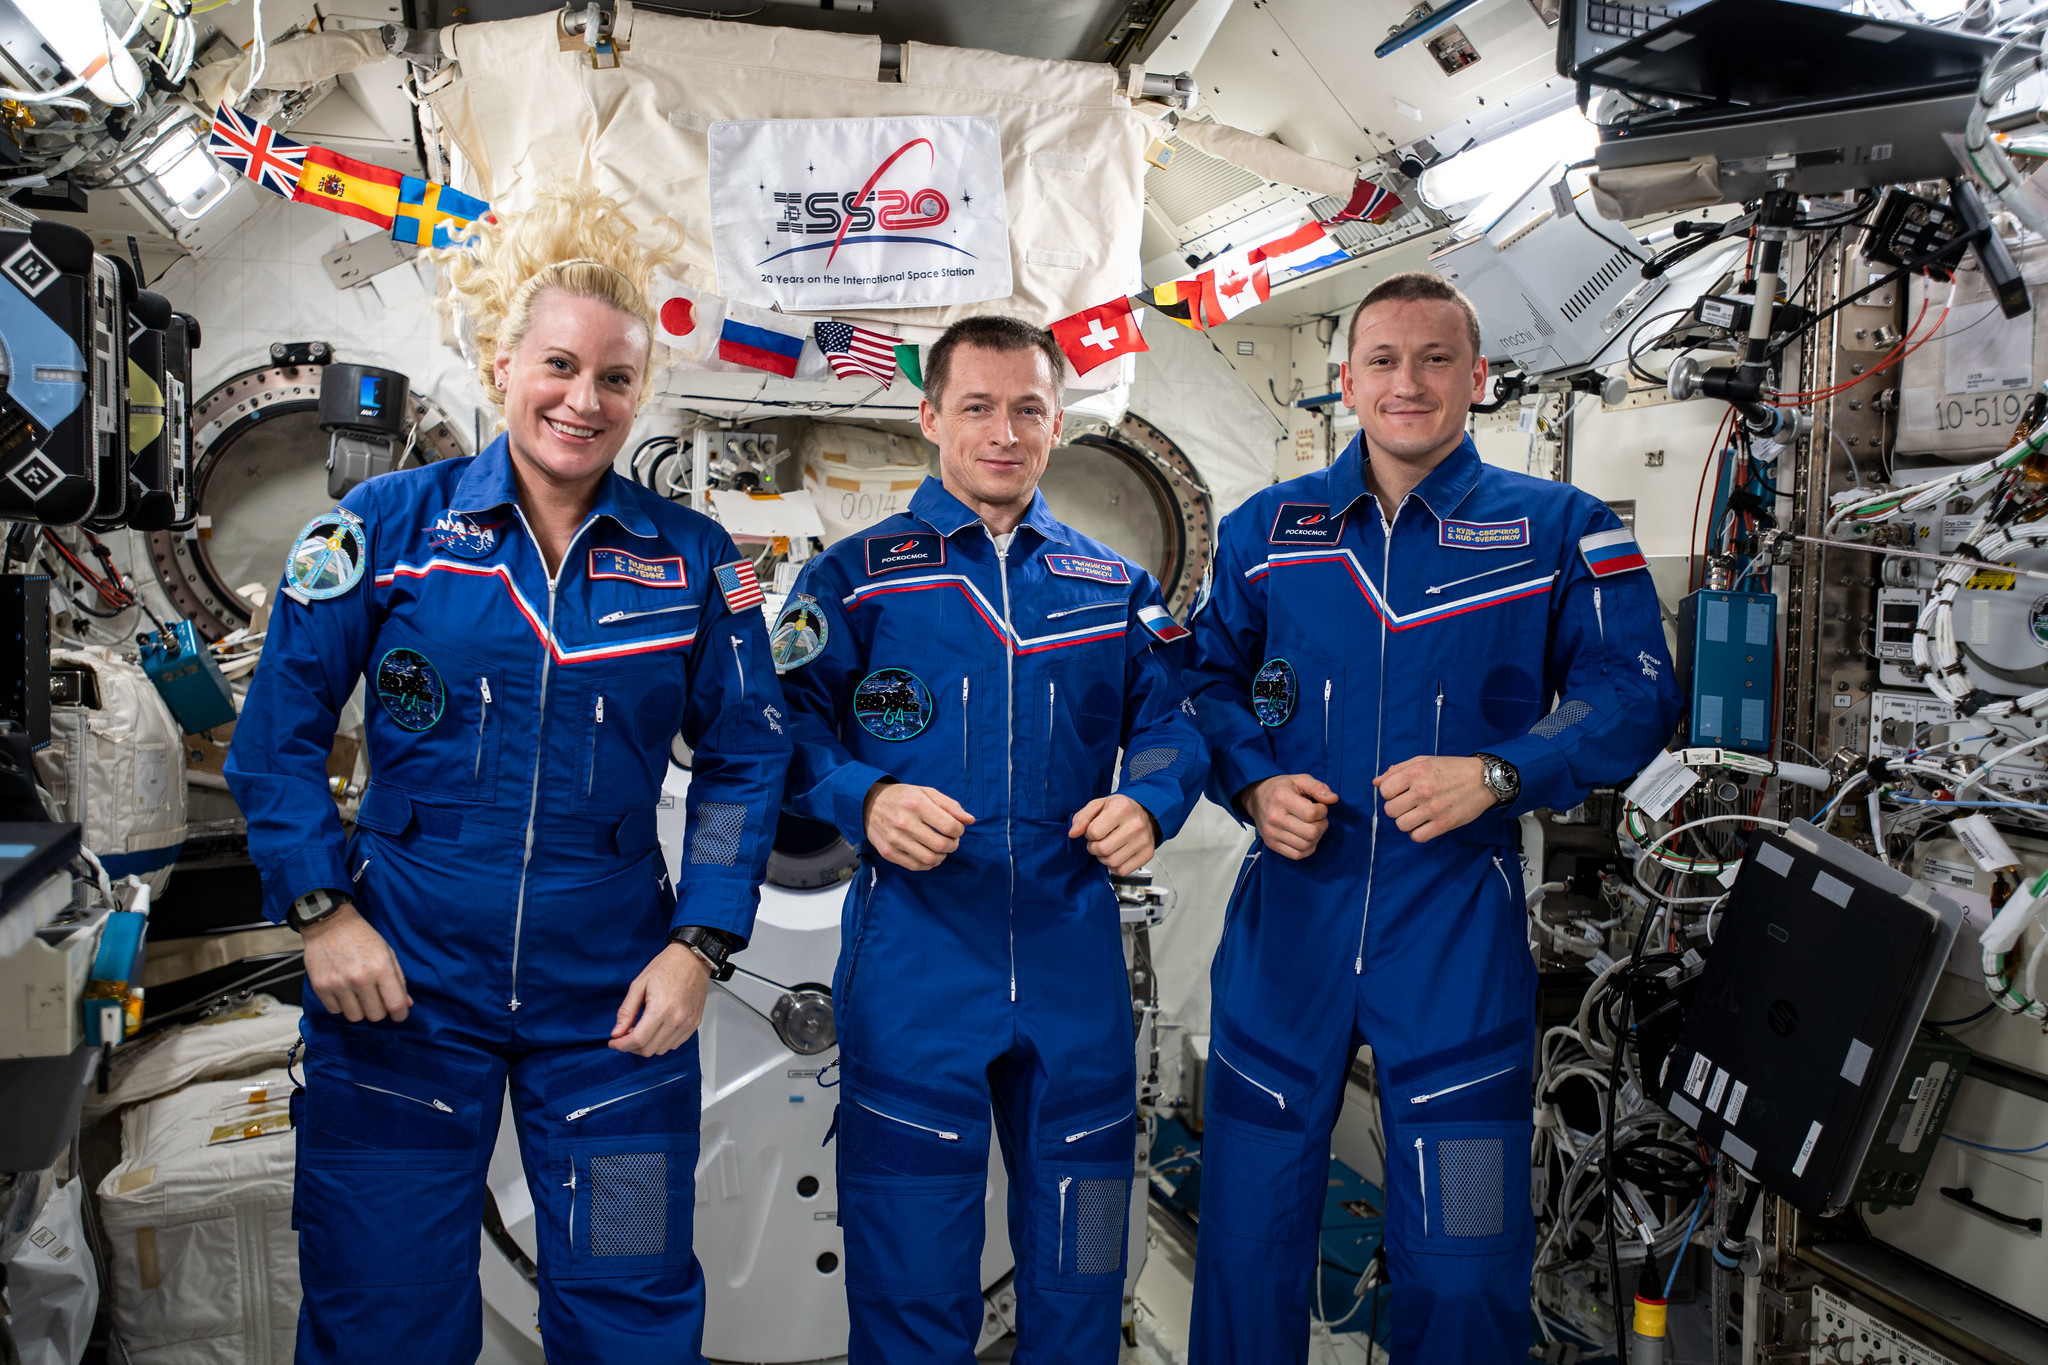 NASA astronaut Kate Rubins and two Russian cosmonauts have landed back on Earth